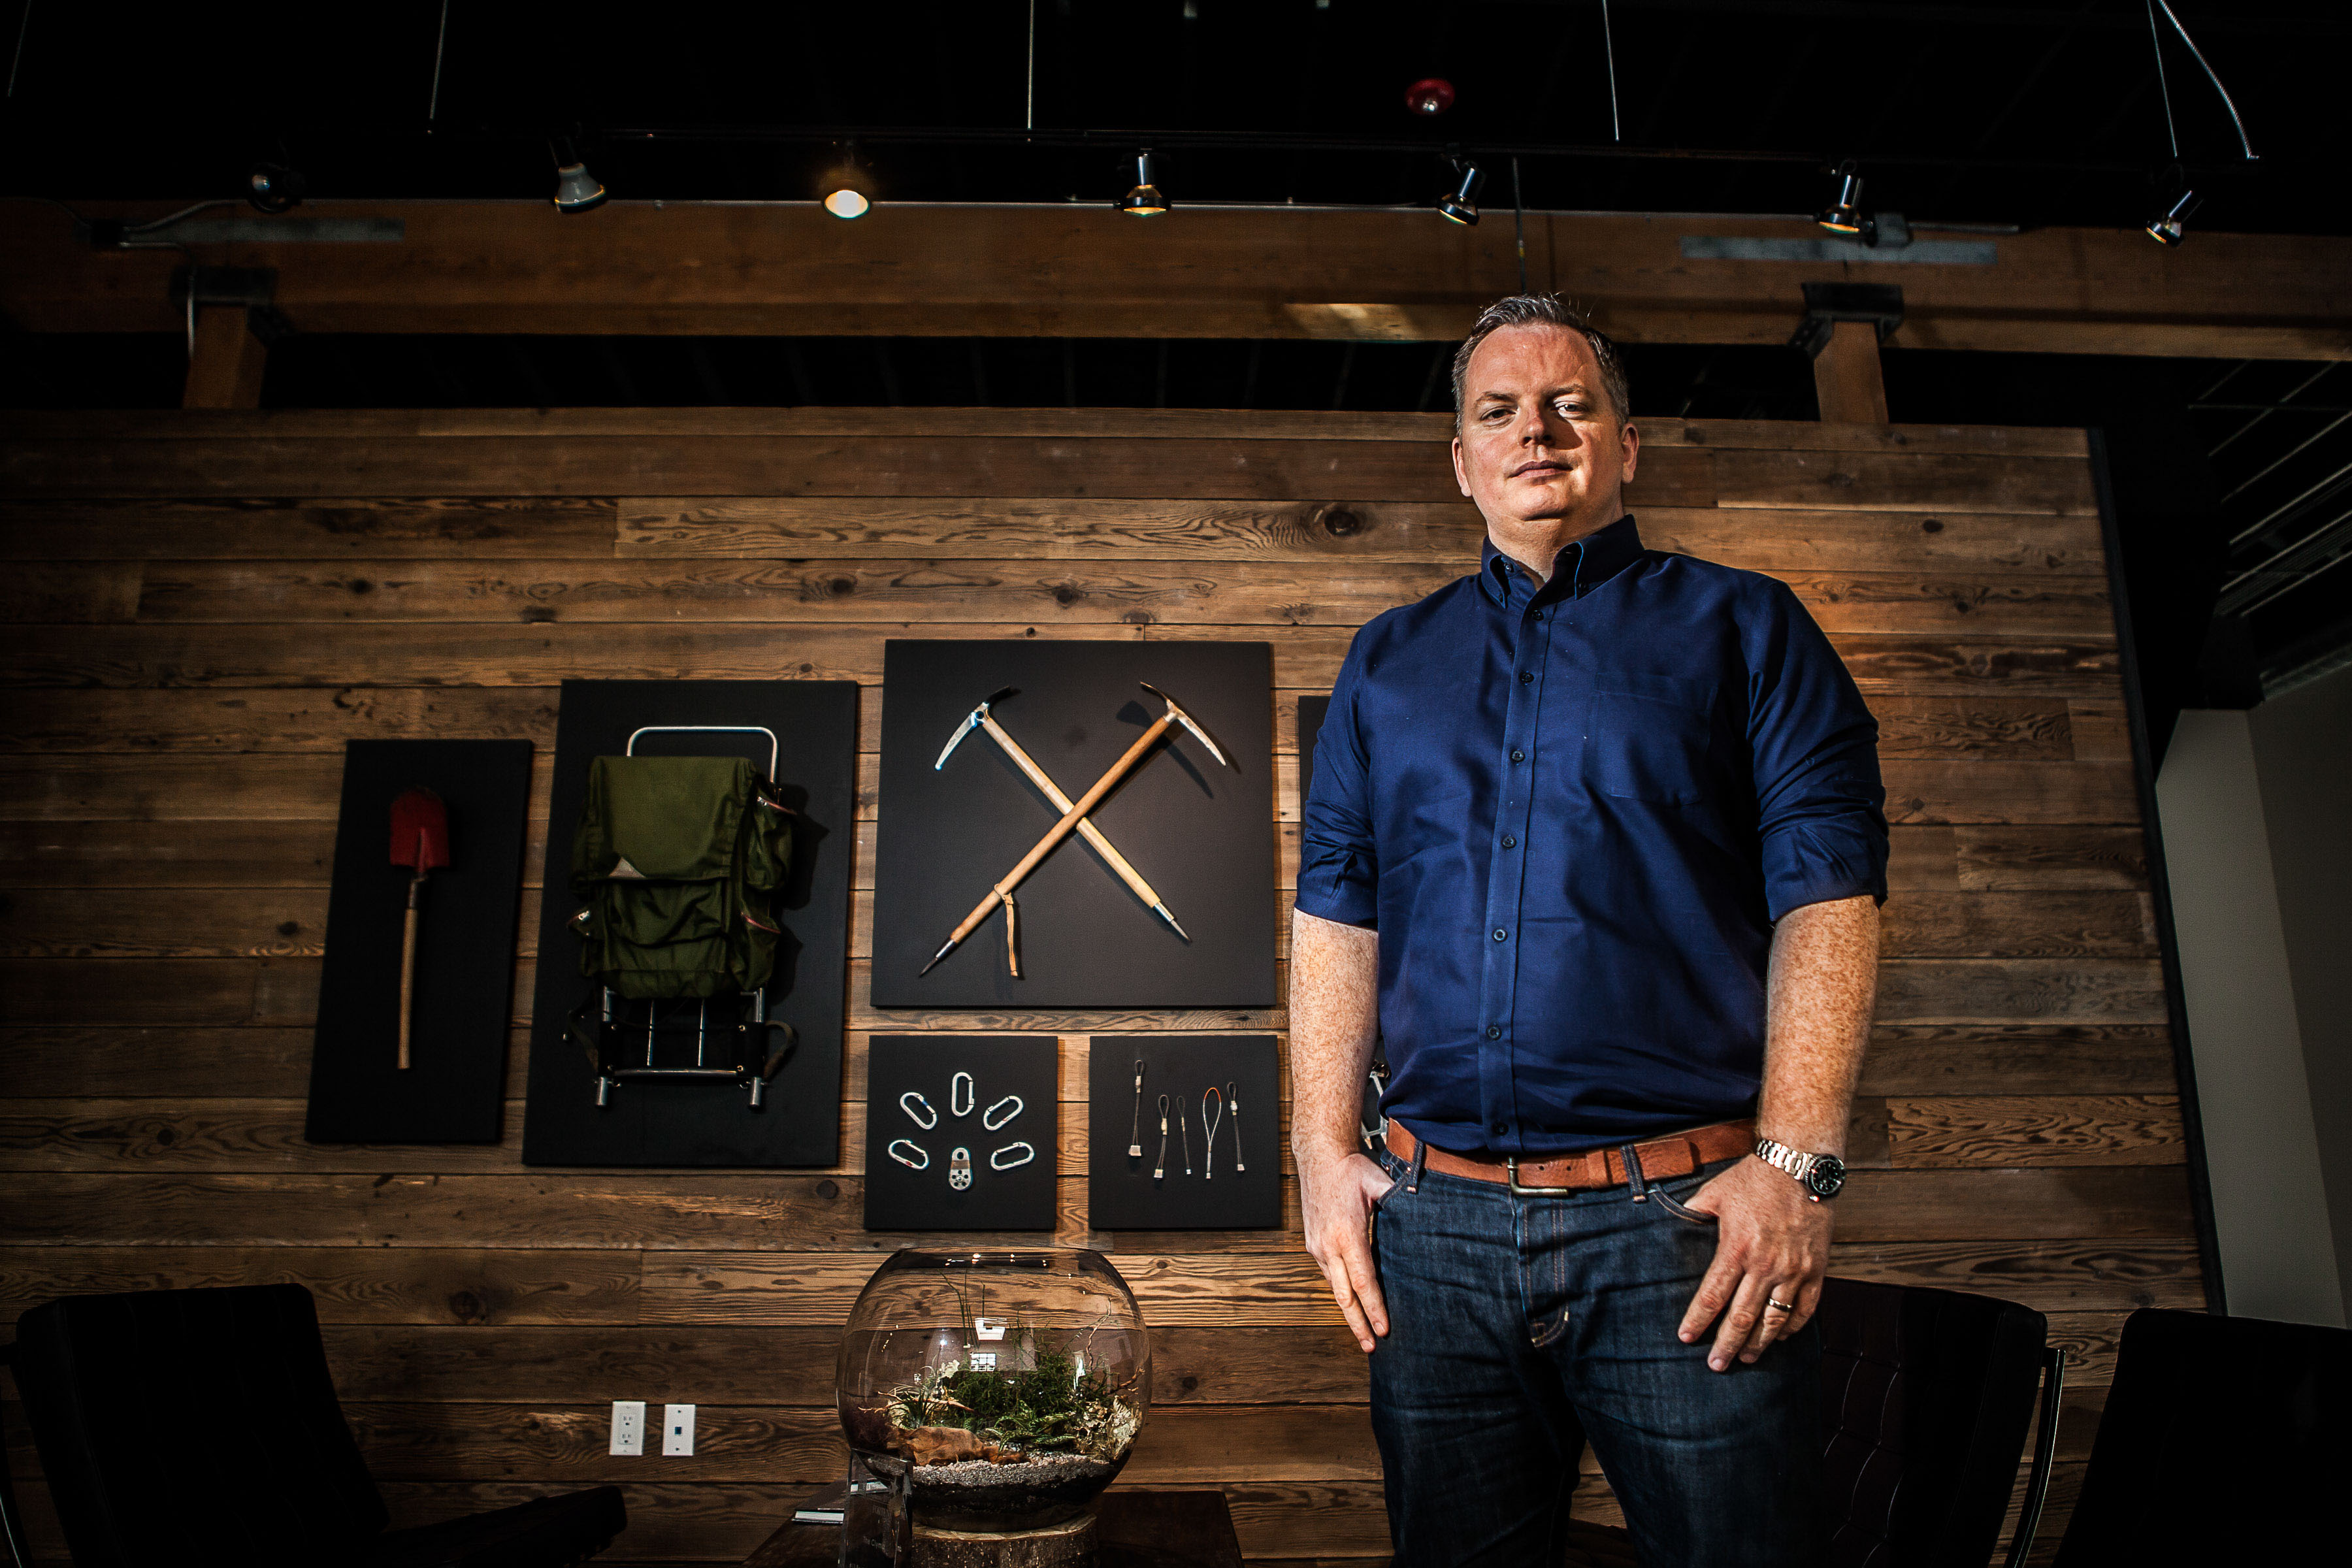 Ceo of Outdoor Equipment company stand in front of mounted equipment on wall